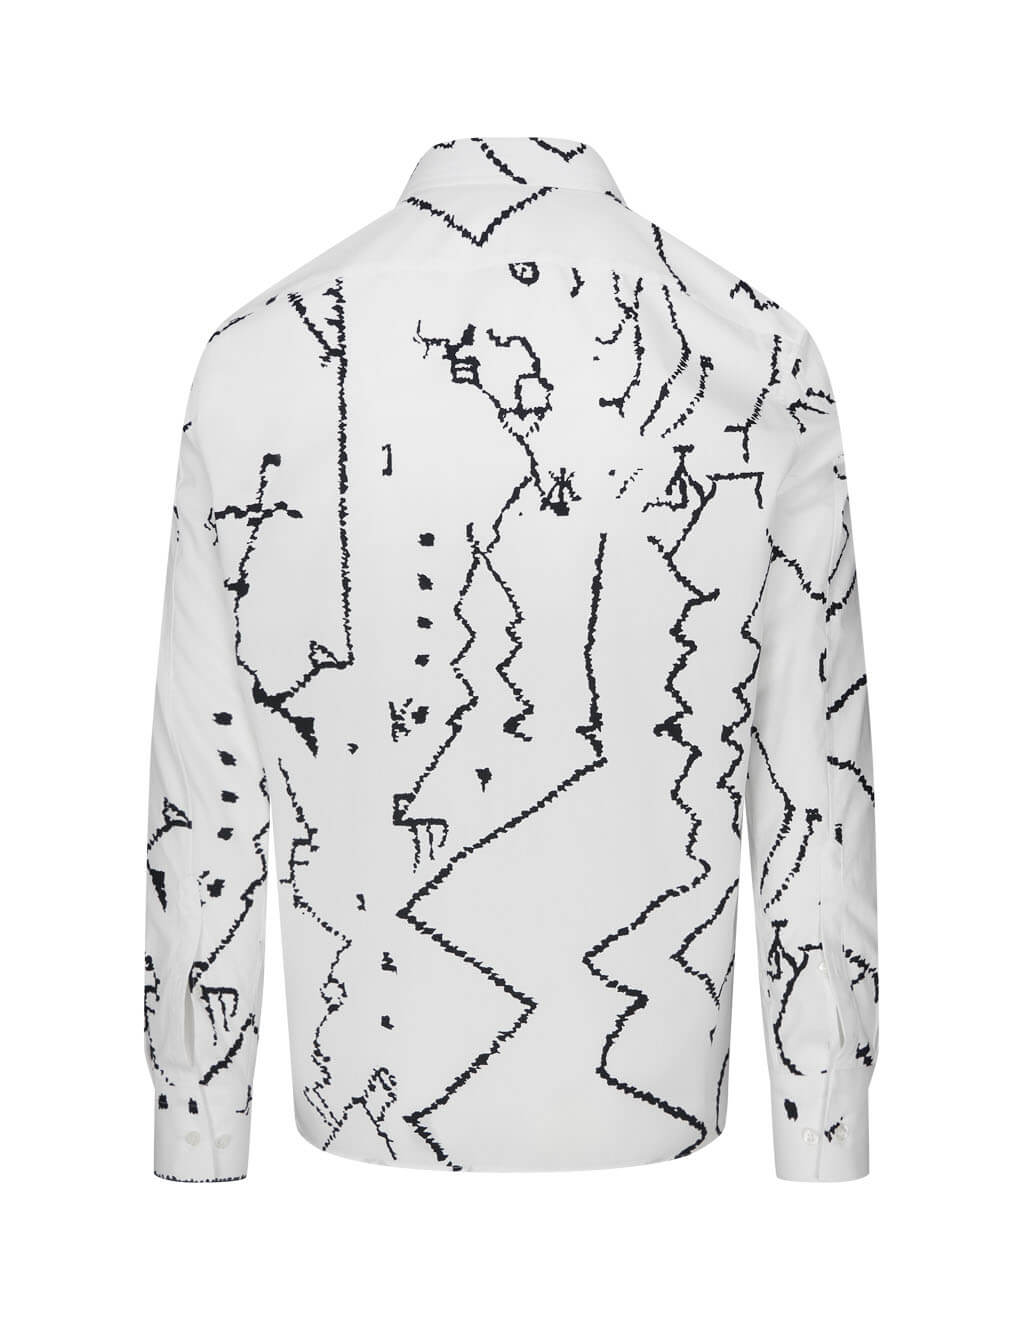 Men's Neil Barrett Line Drawing Shirt in White - BCM1455S-P096 526